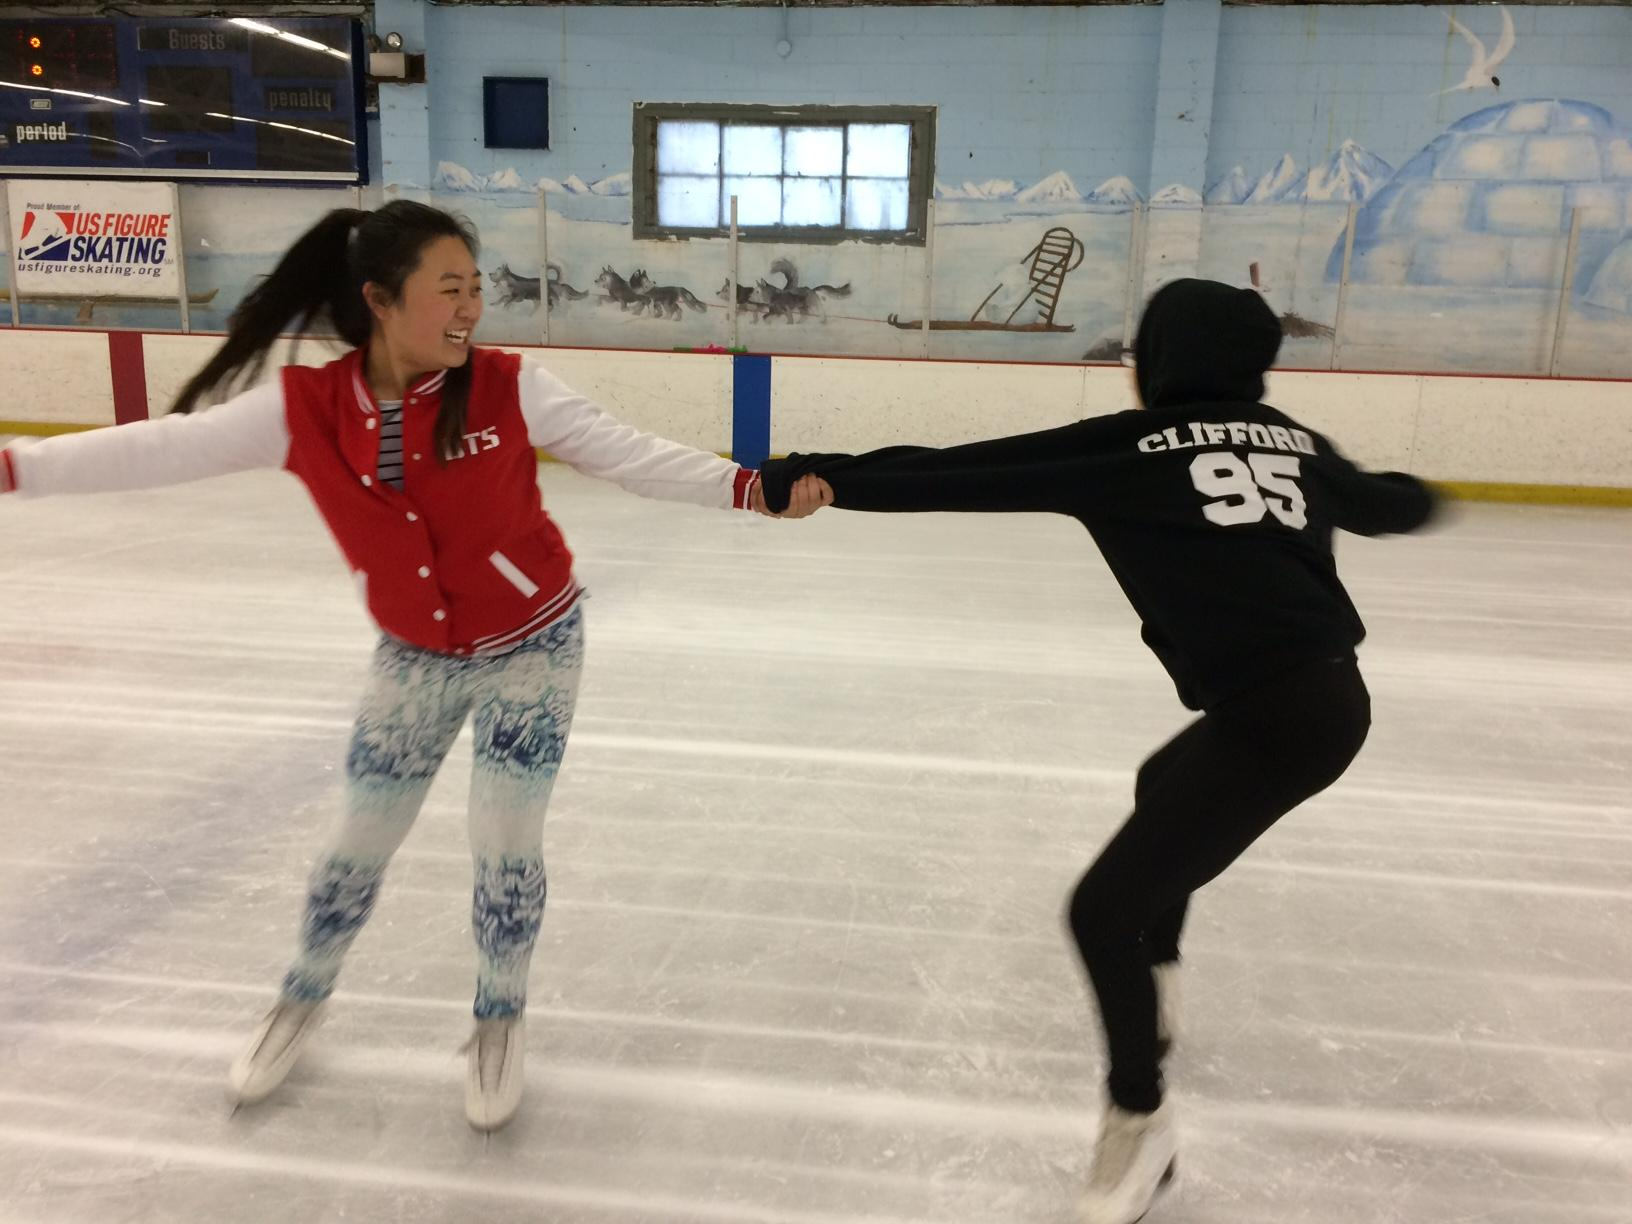 Freestyle 5 skaters and friends Leanne Luu (left) and Raven Myles (right) grip each other's hands and pull into a two-person spin. Myles said,